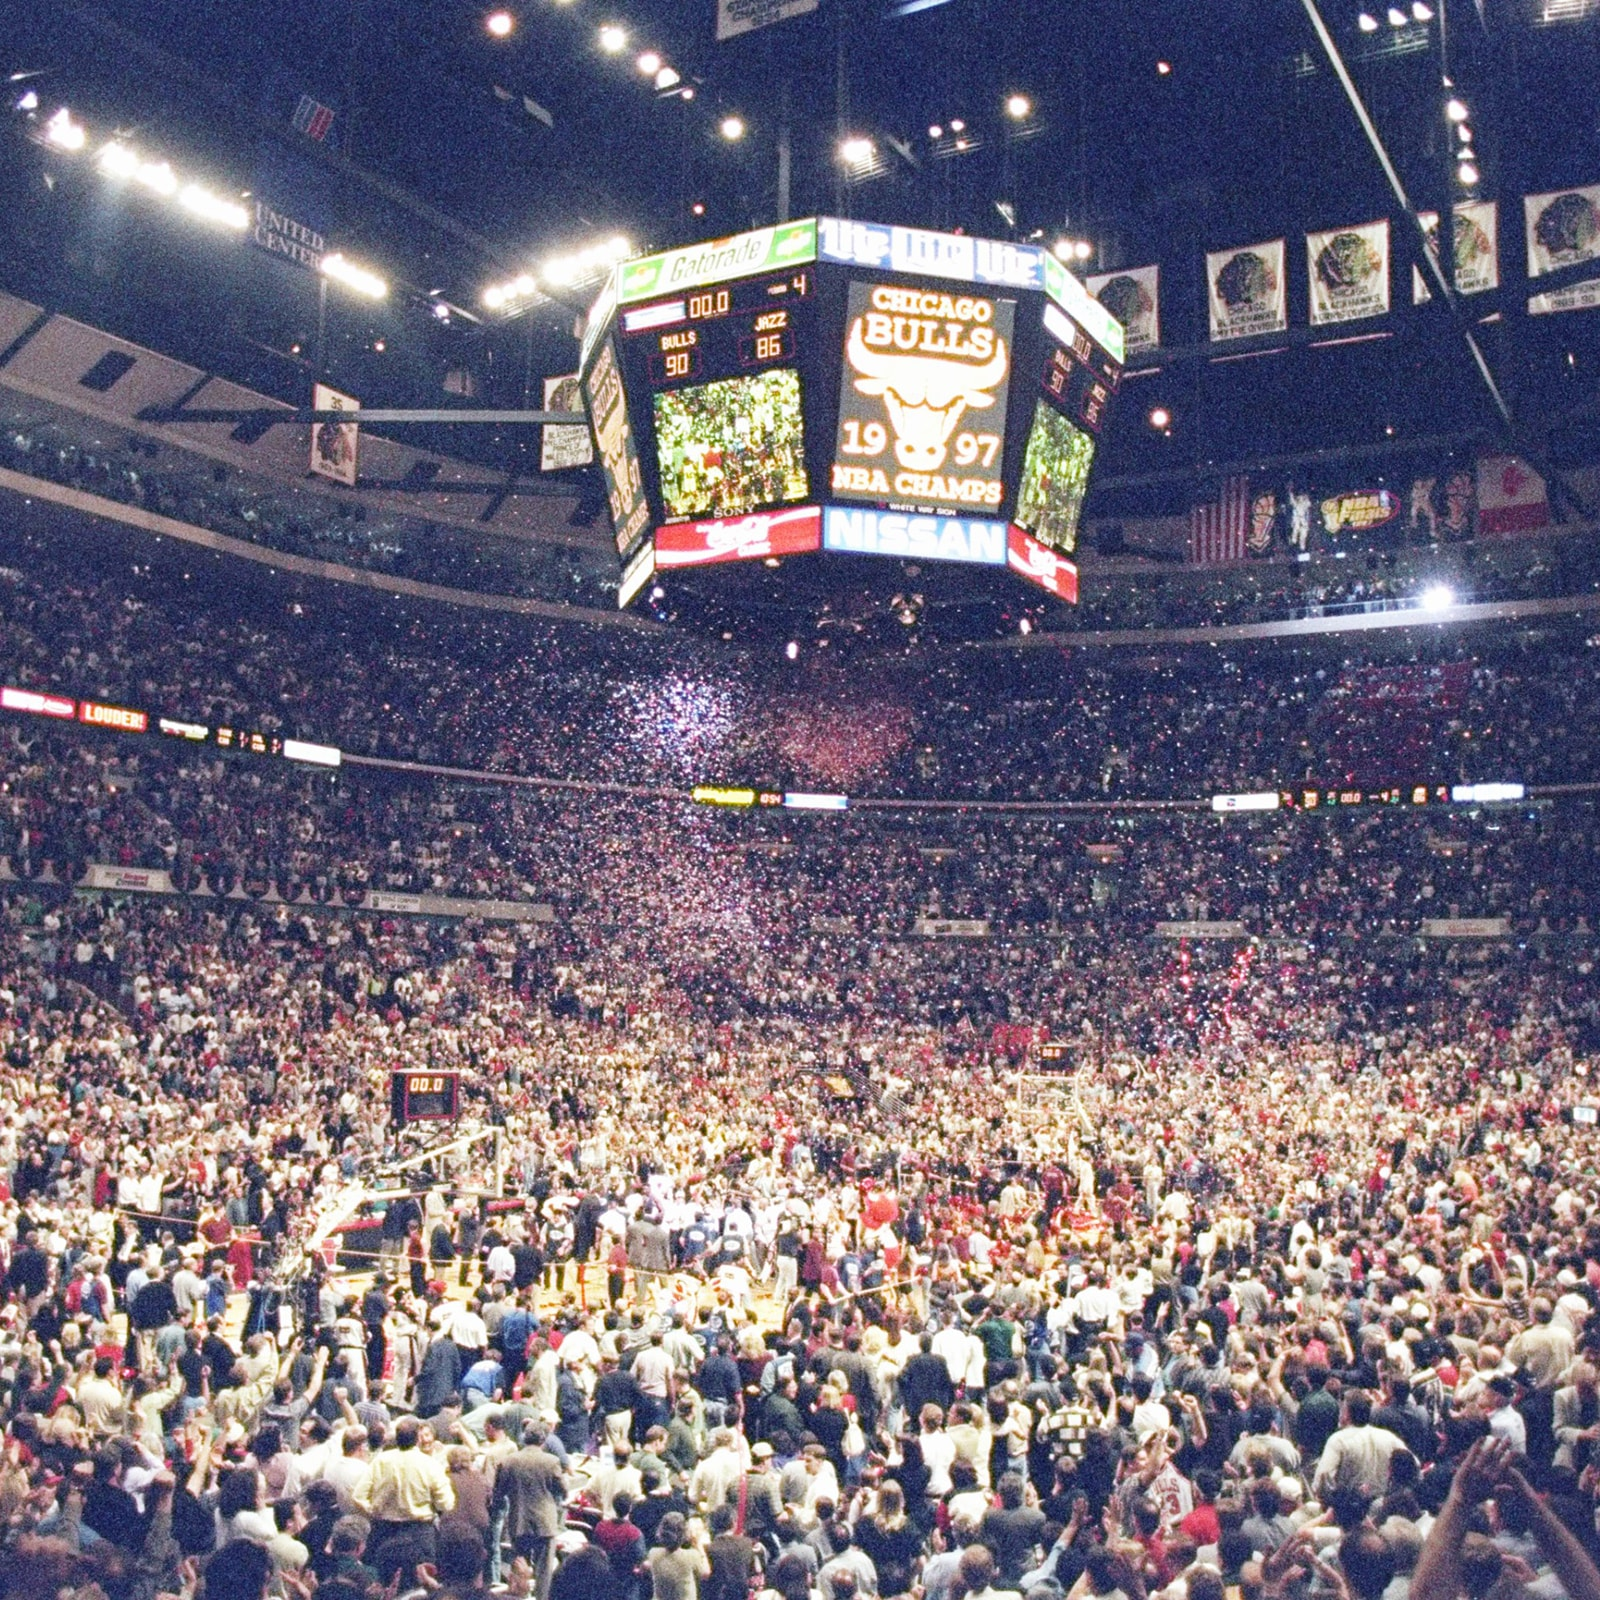 Fans and players floor the UC floor after the Bulls win the 1997 championship